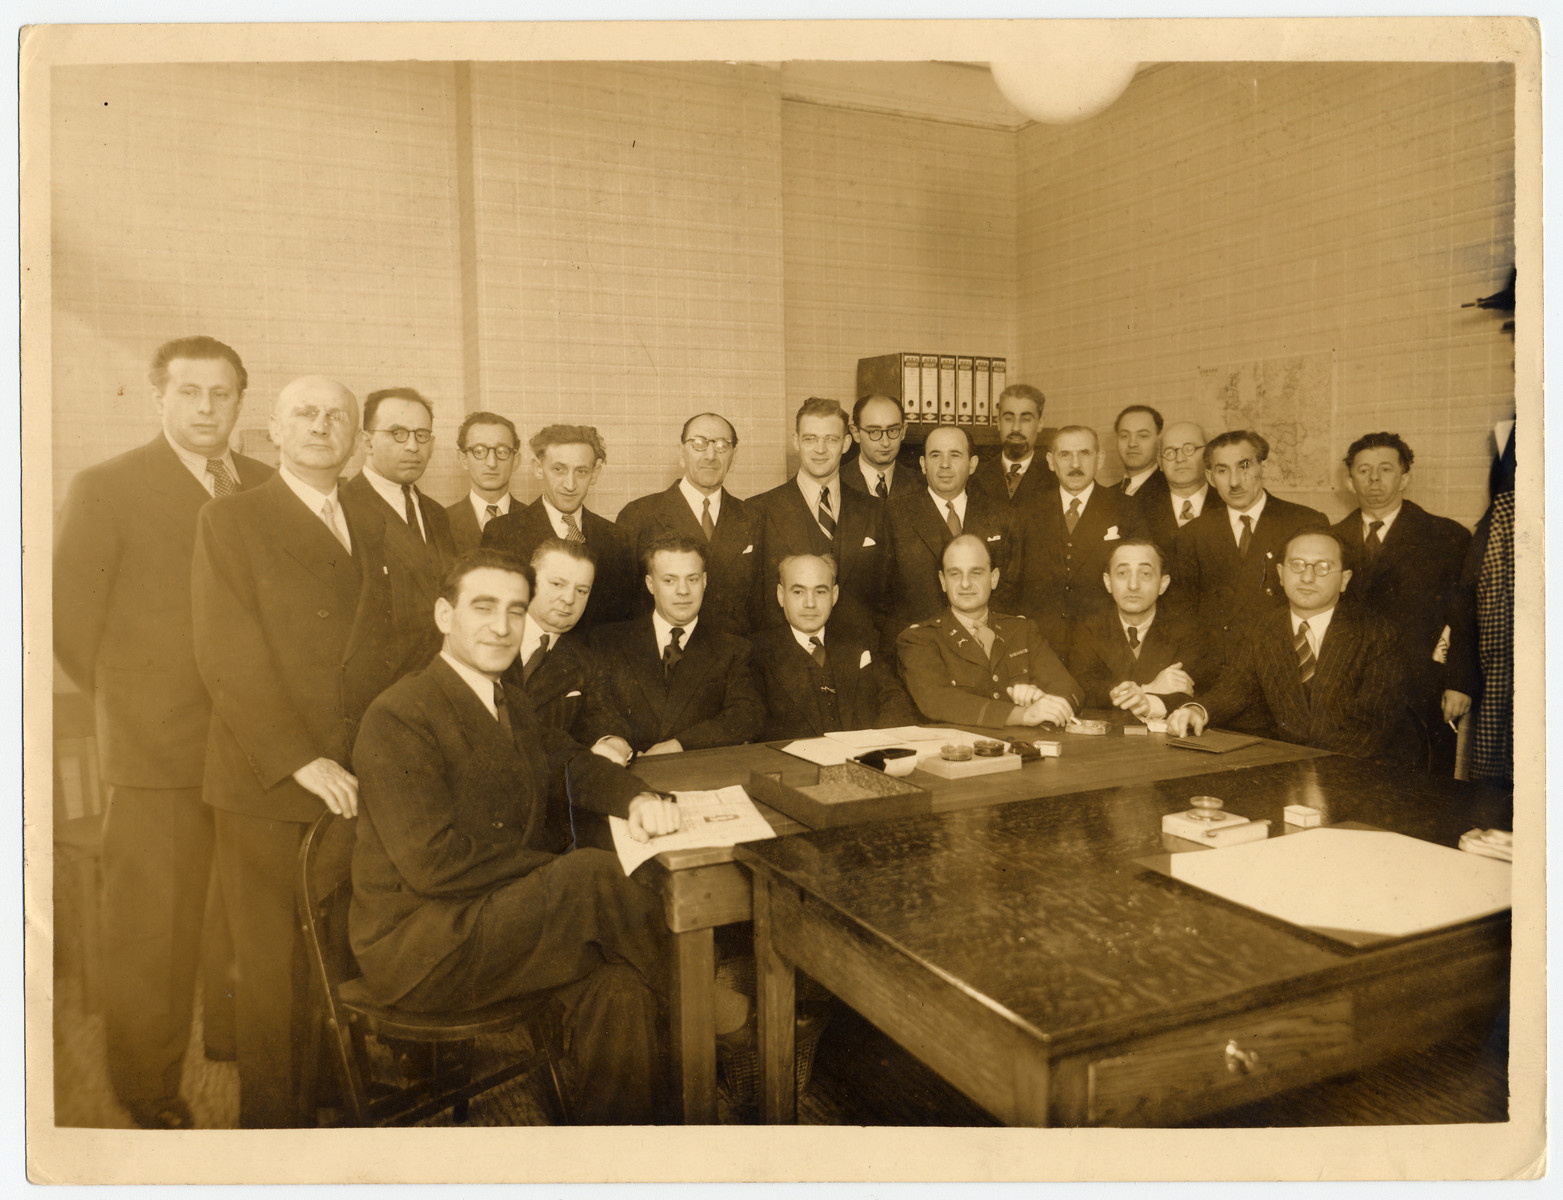 Members of the Belgian Jewish resistance meet with members of the Joint Distribution Committee after the war.  Chaim Perelman is seated in the front row on the right.  Abusz Werber is in the front row on the left.  Fucks is seated third from the left.  Aaron Dorf is standing fifth from the left and Israel Tabakman is standing second from the right.